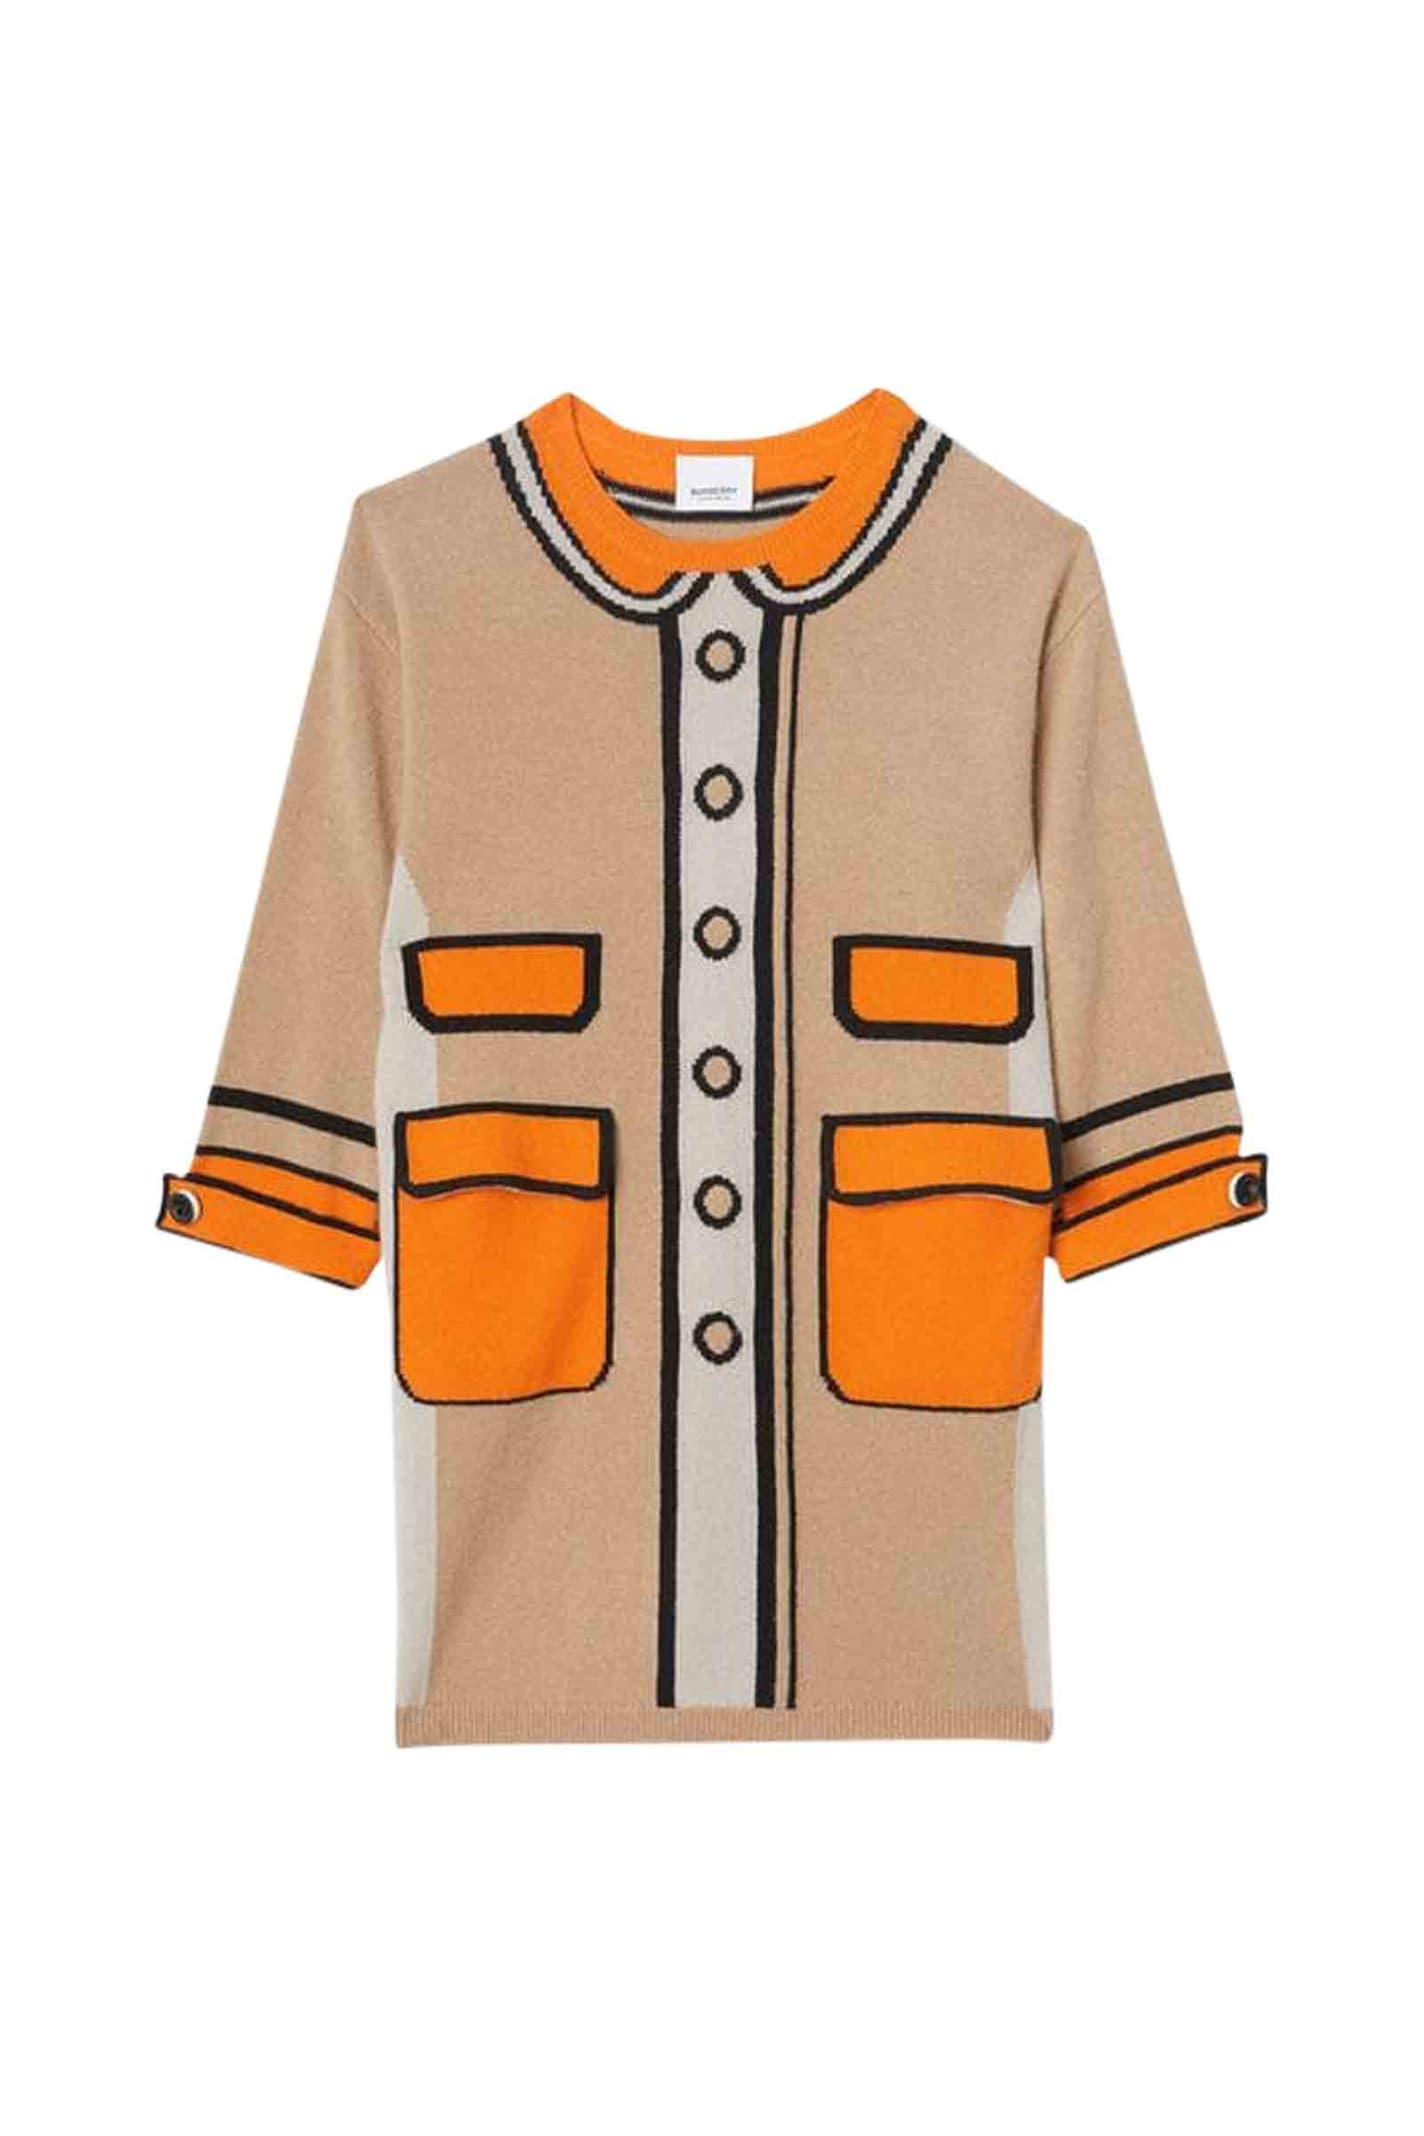 Buy Burberry Loeil Trompe Dress In Cashmere online, shop Burberry with free shipping